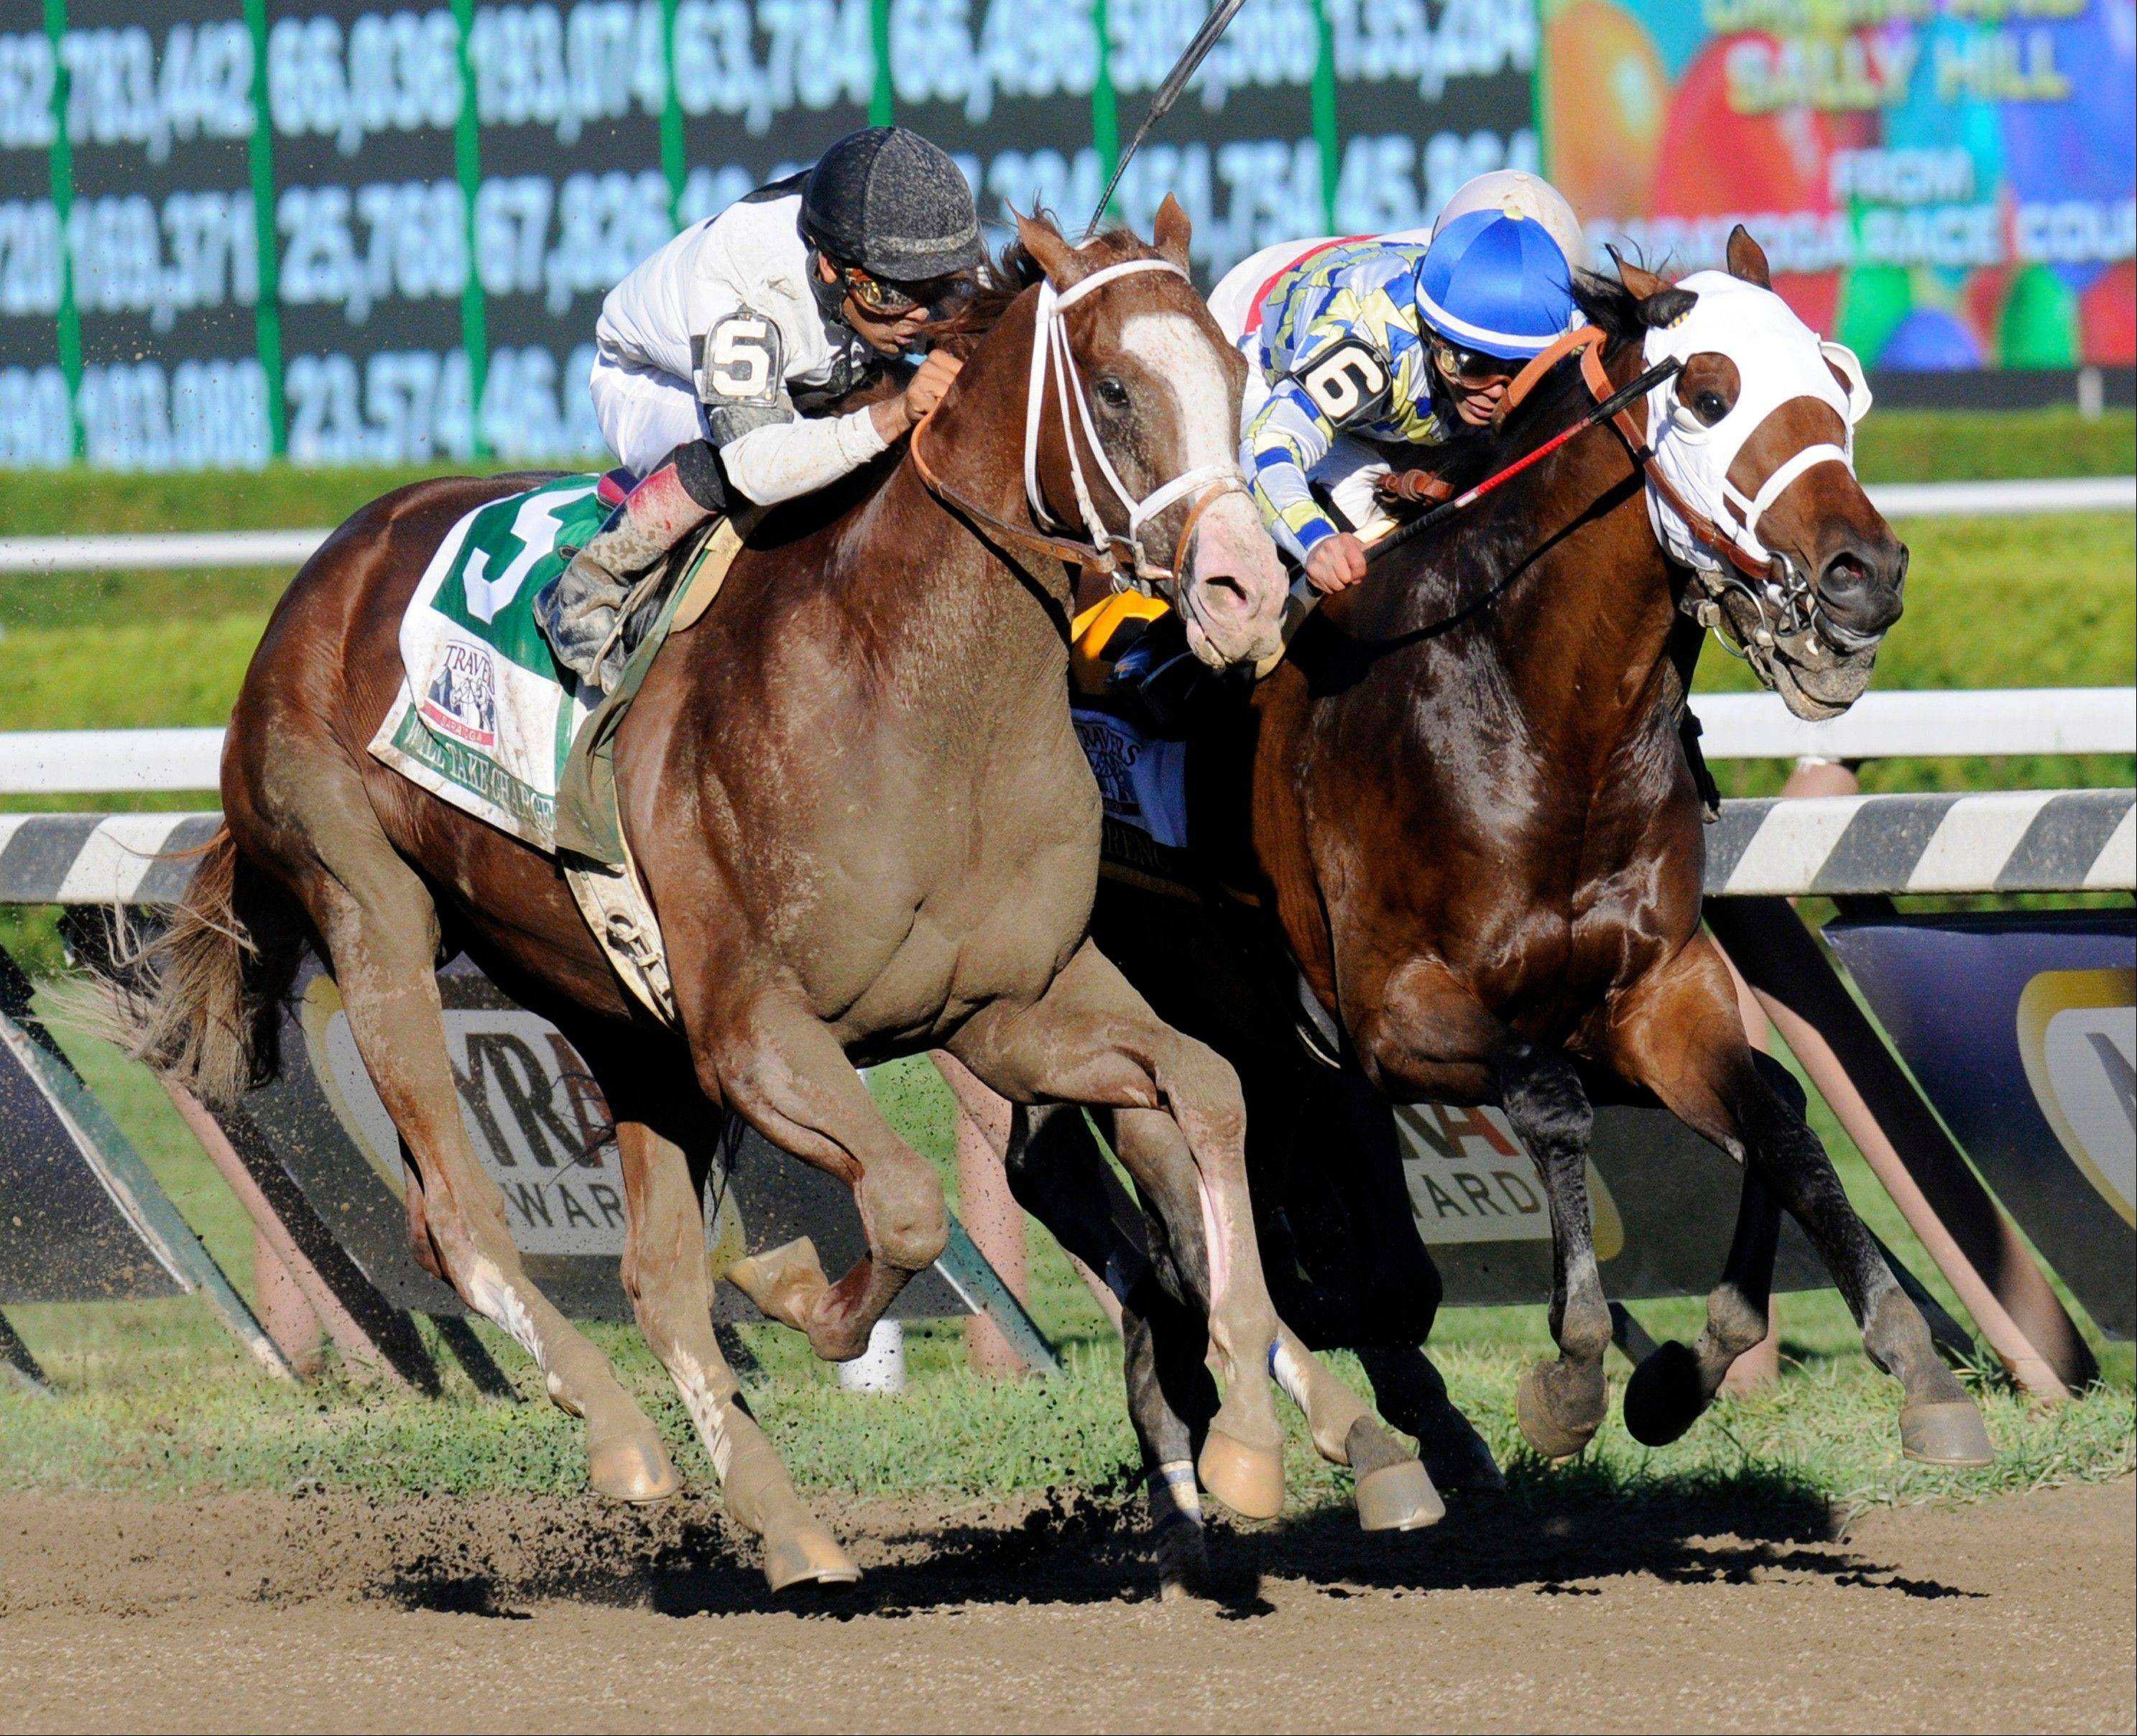 Will Take Charge, left, with jockey Luis Saez aboard, pulls past Moreno, with Jockey Jose L. Ortiz up, to win the Travers Stakes horse race at Saratoga Race Course in Saratoga Springs, N.Y., Saturday, Aug. 24, 2013. (AP Photo /Hans Pennink)